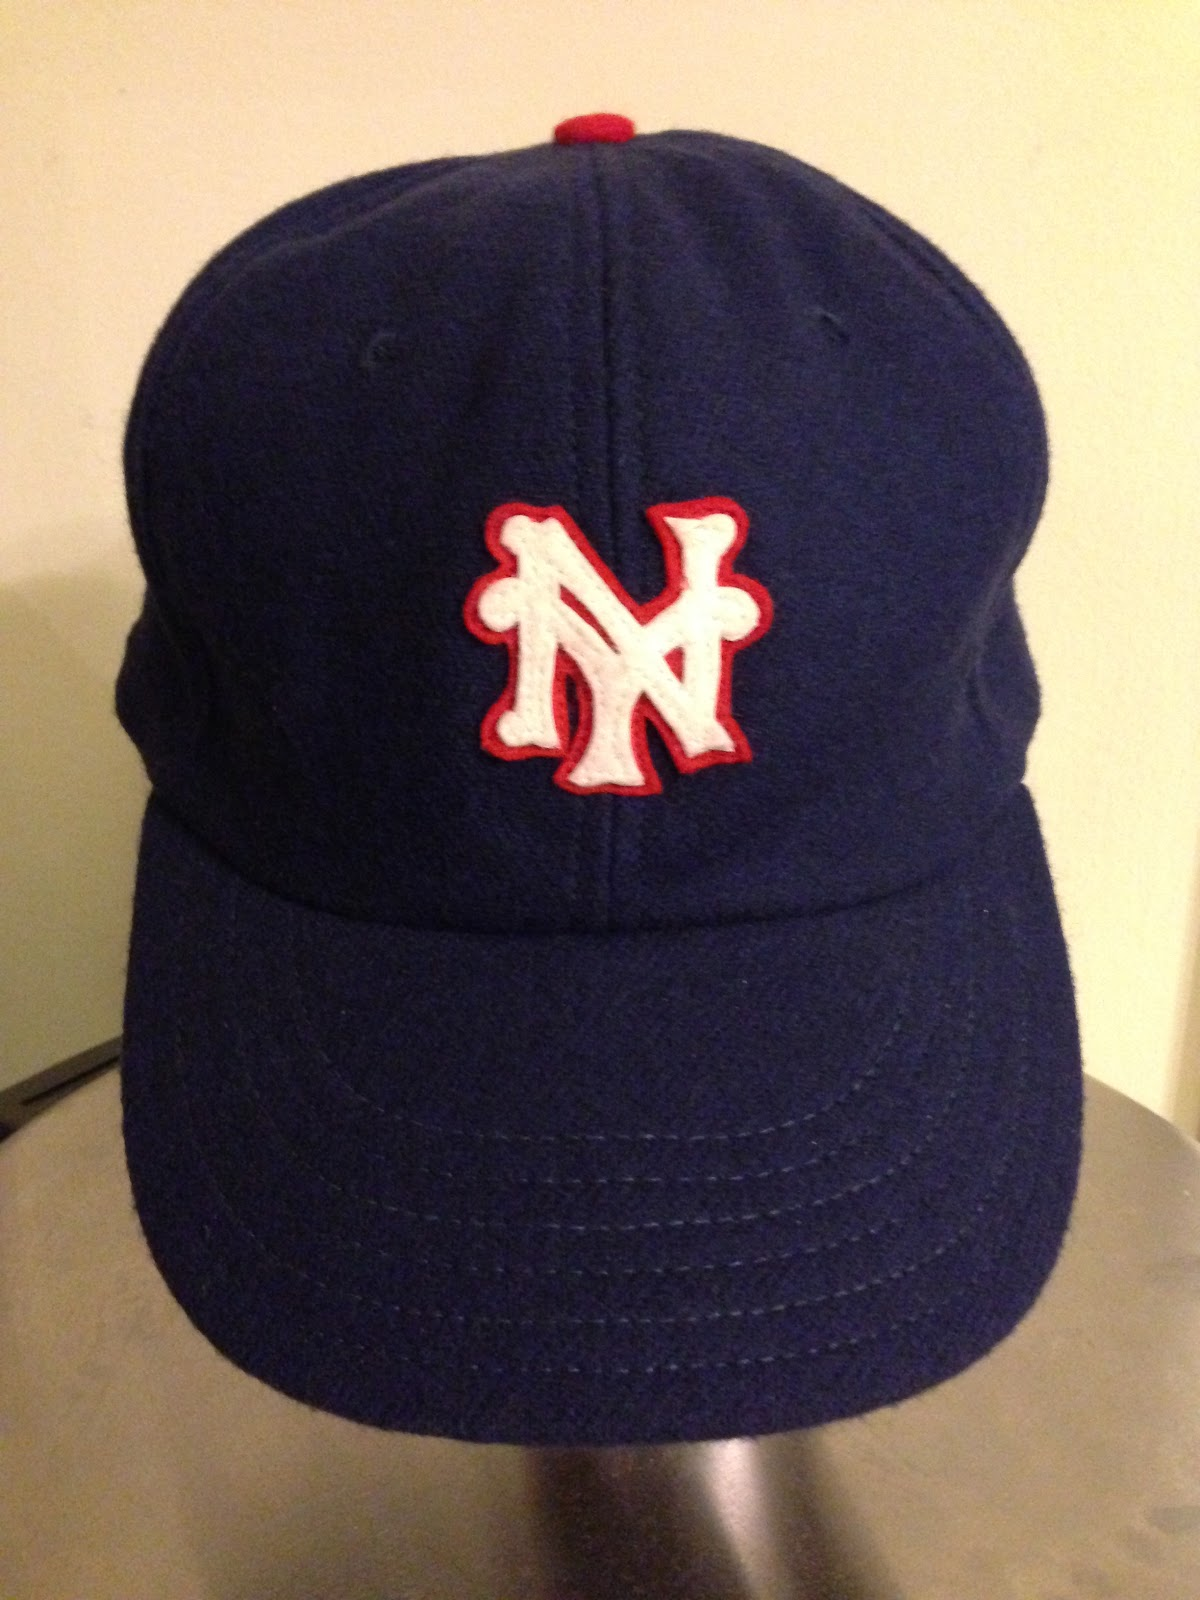 cooperstown ball cap co caps 1940 new york giants. Black Bedroom Furniture Sets. Home Design Ideas